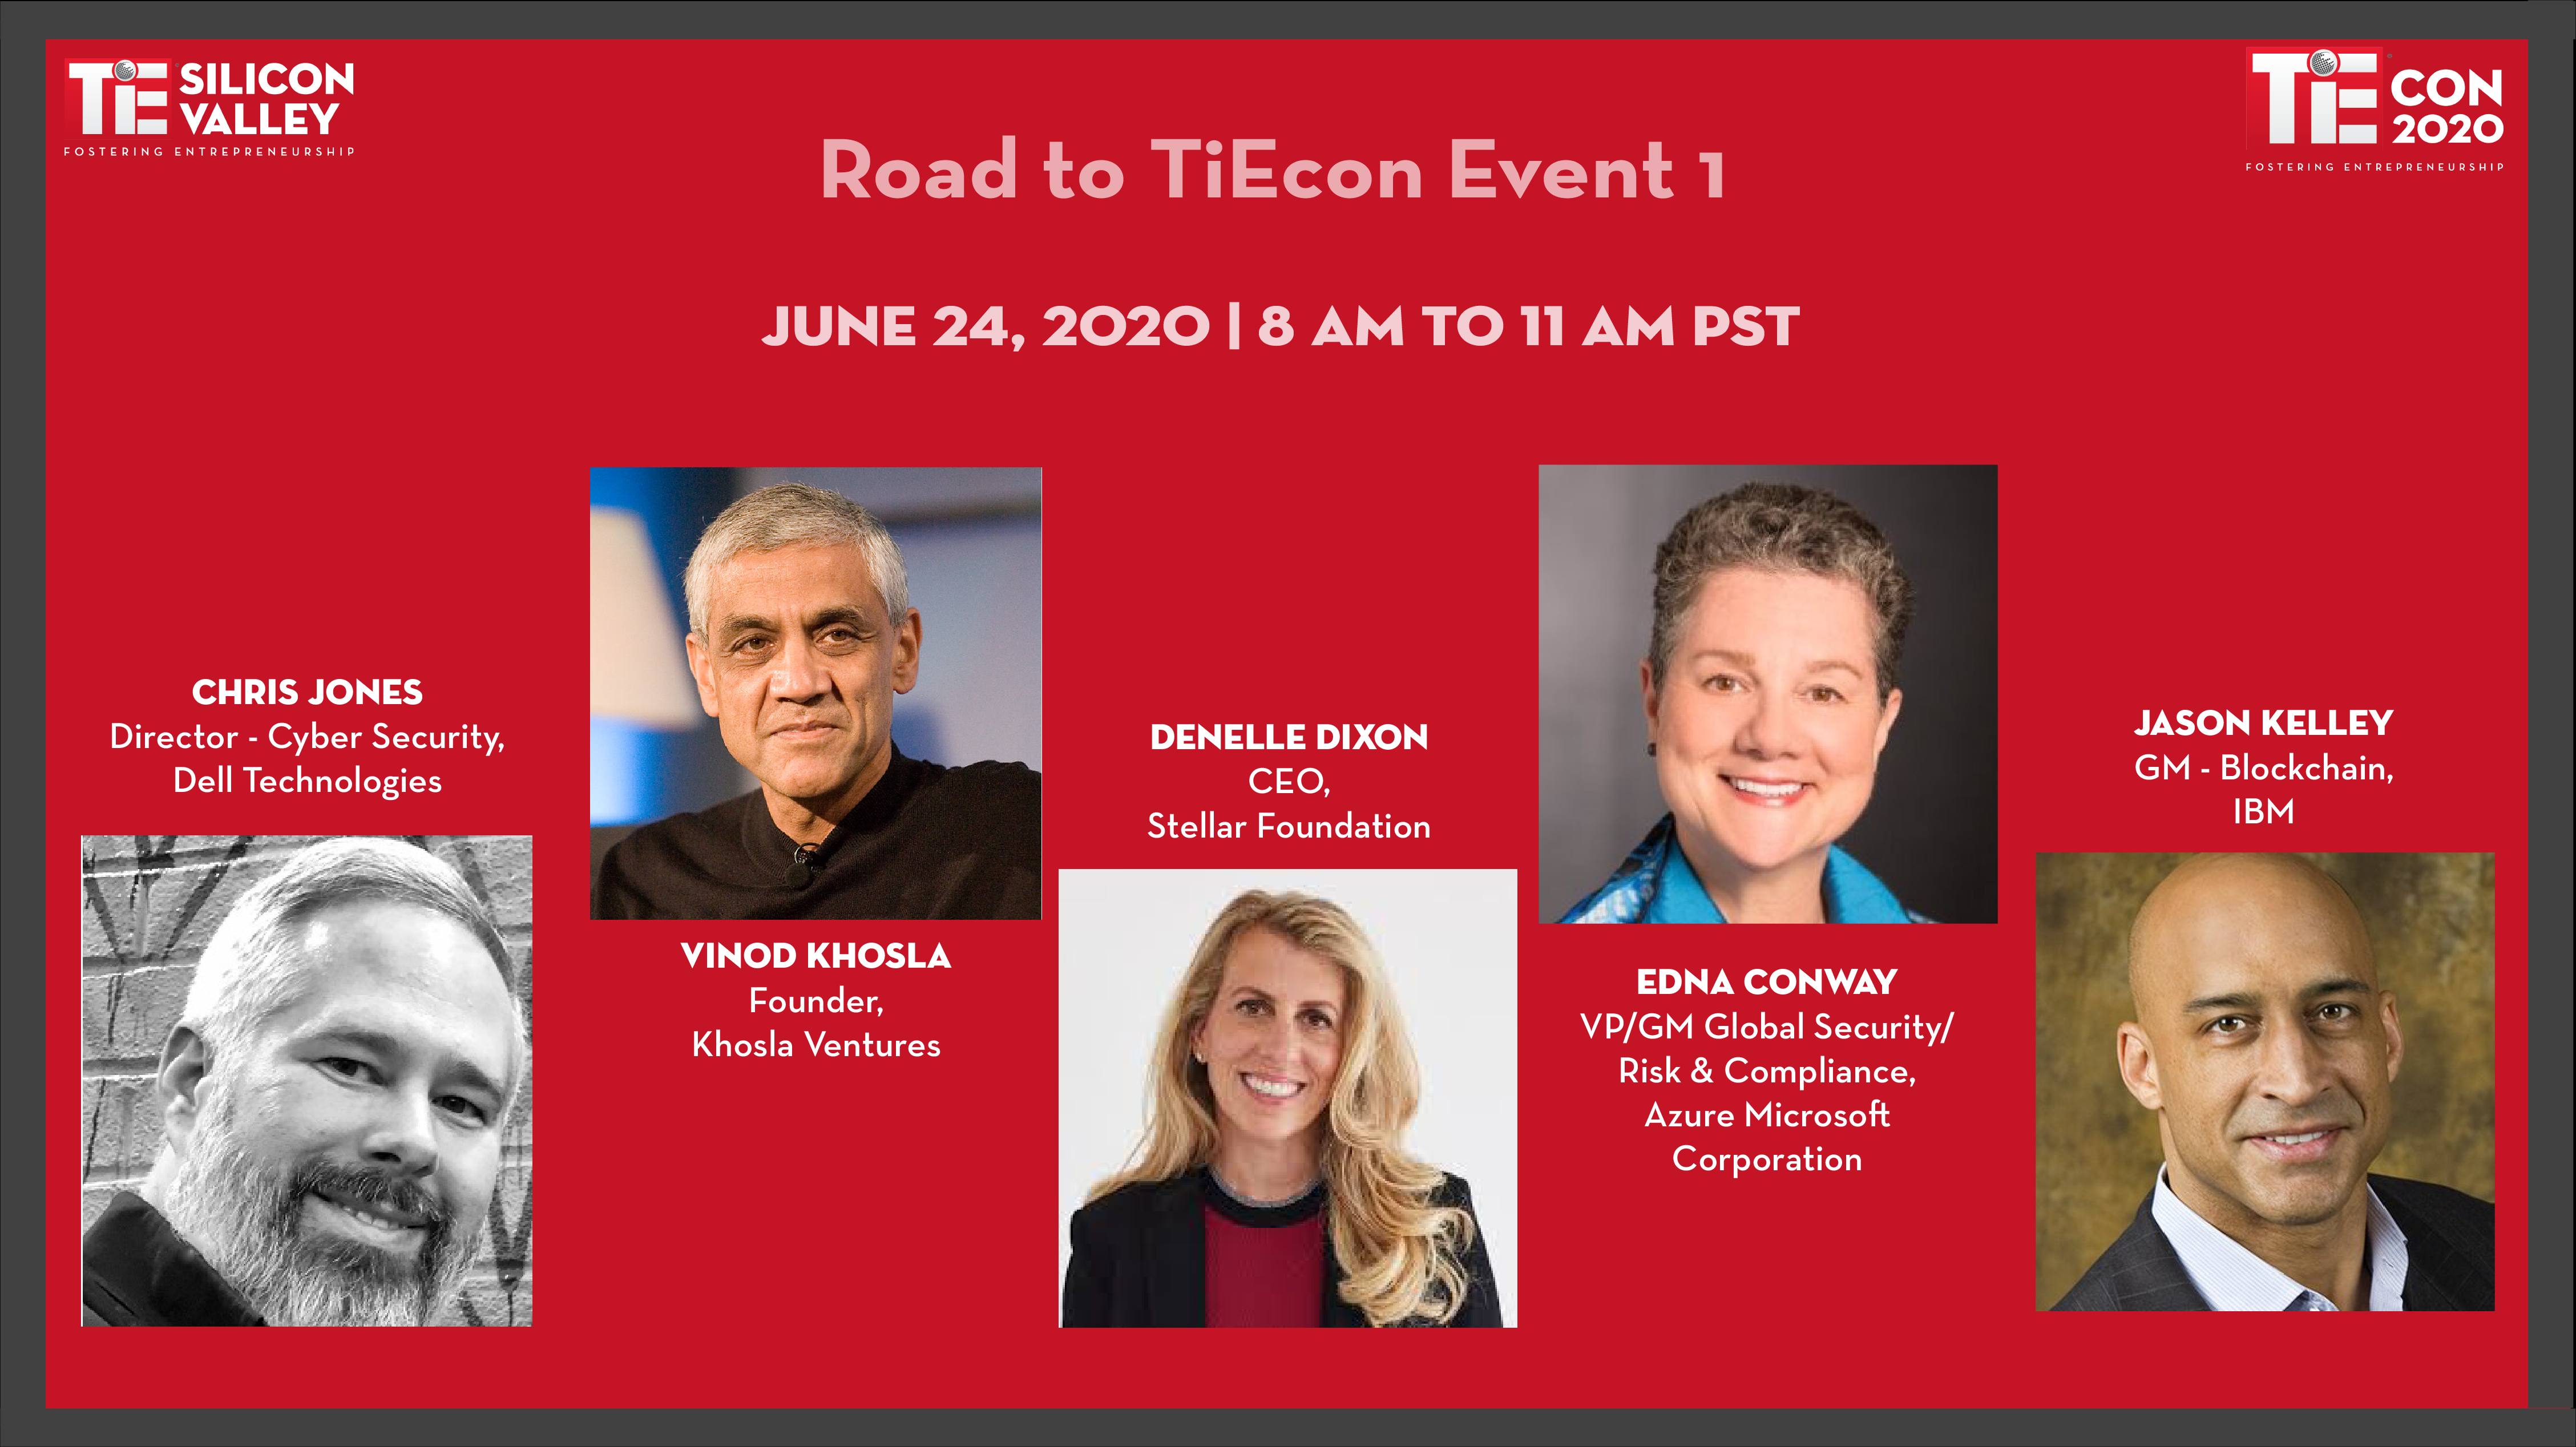 Road to TiEcon 2020